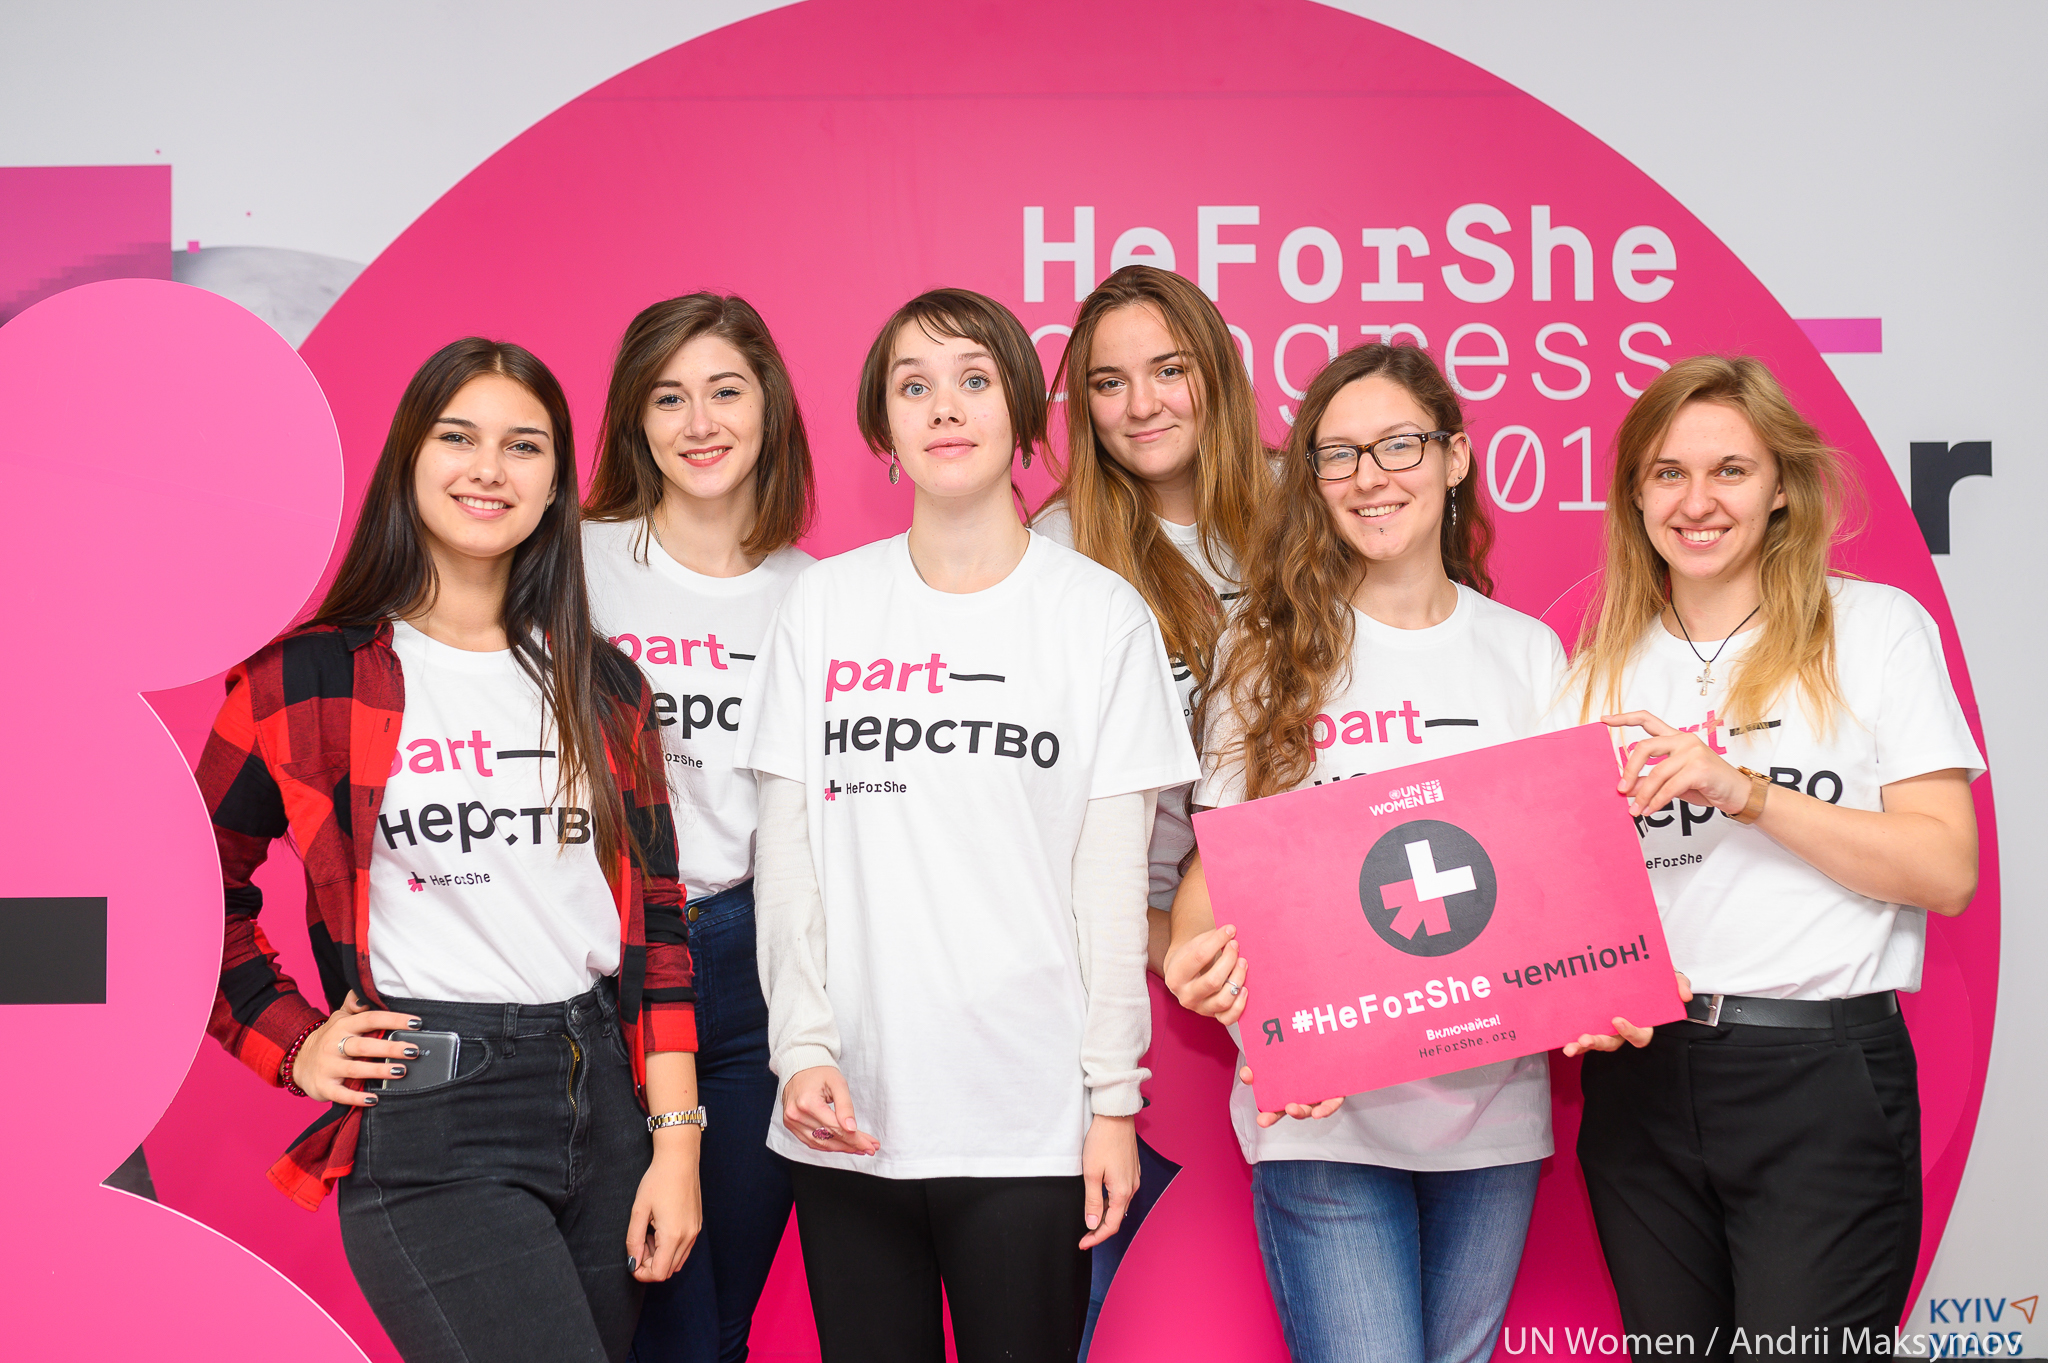 HeForShe Congress examines how to speed up gender equality in Ukraine